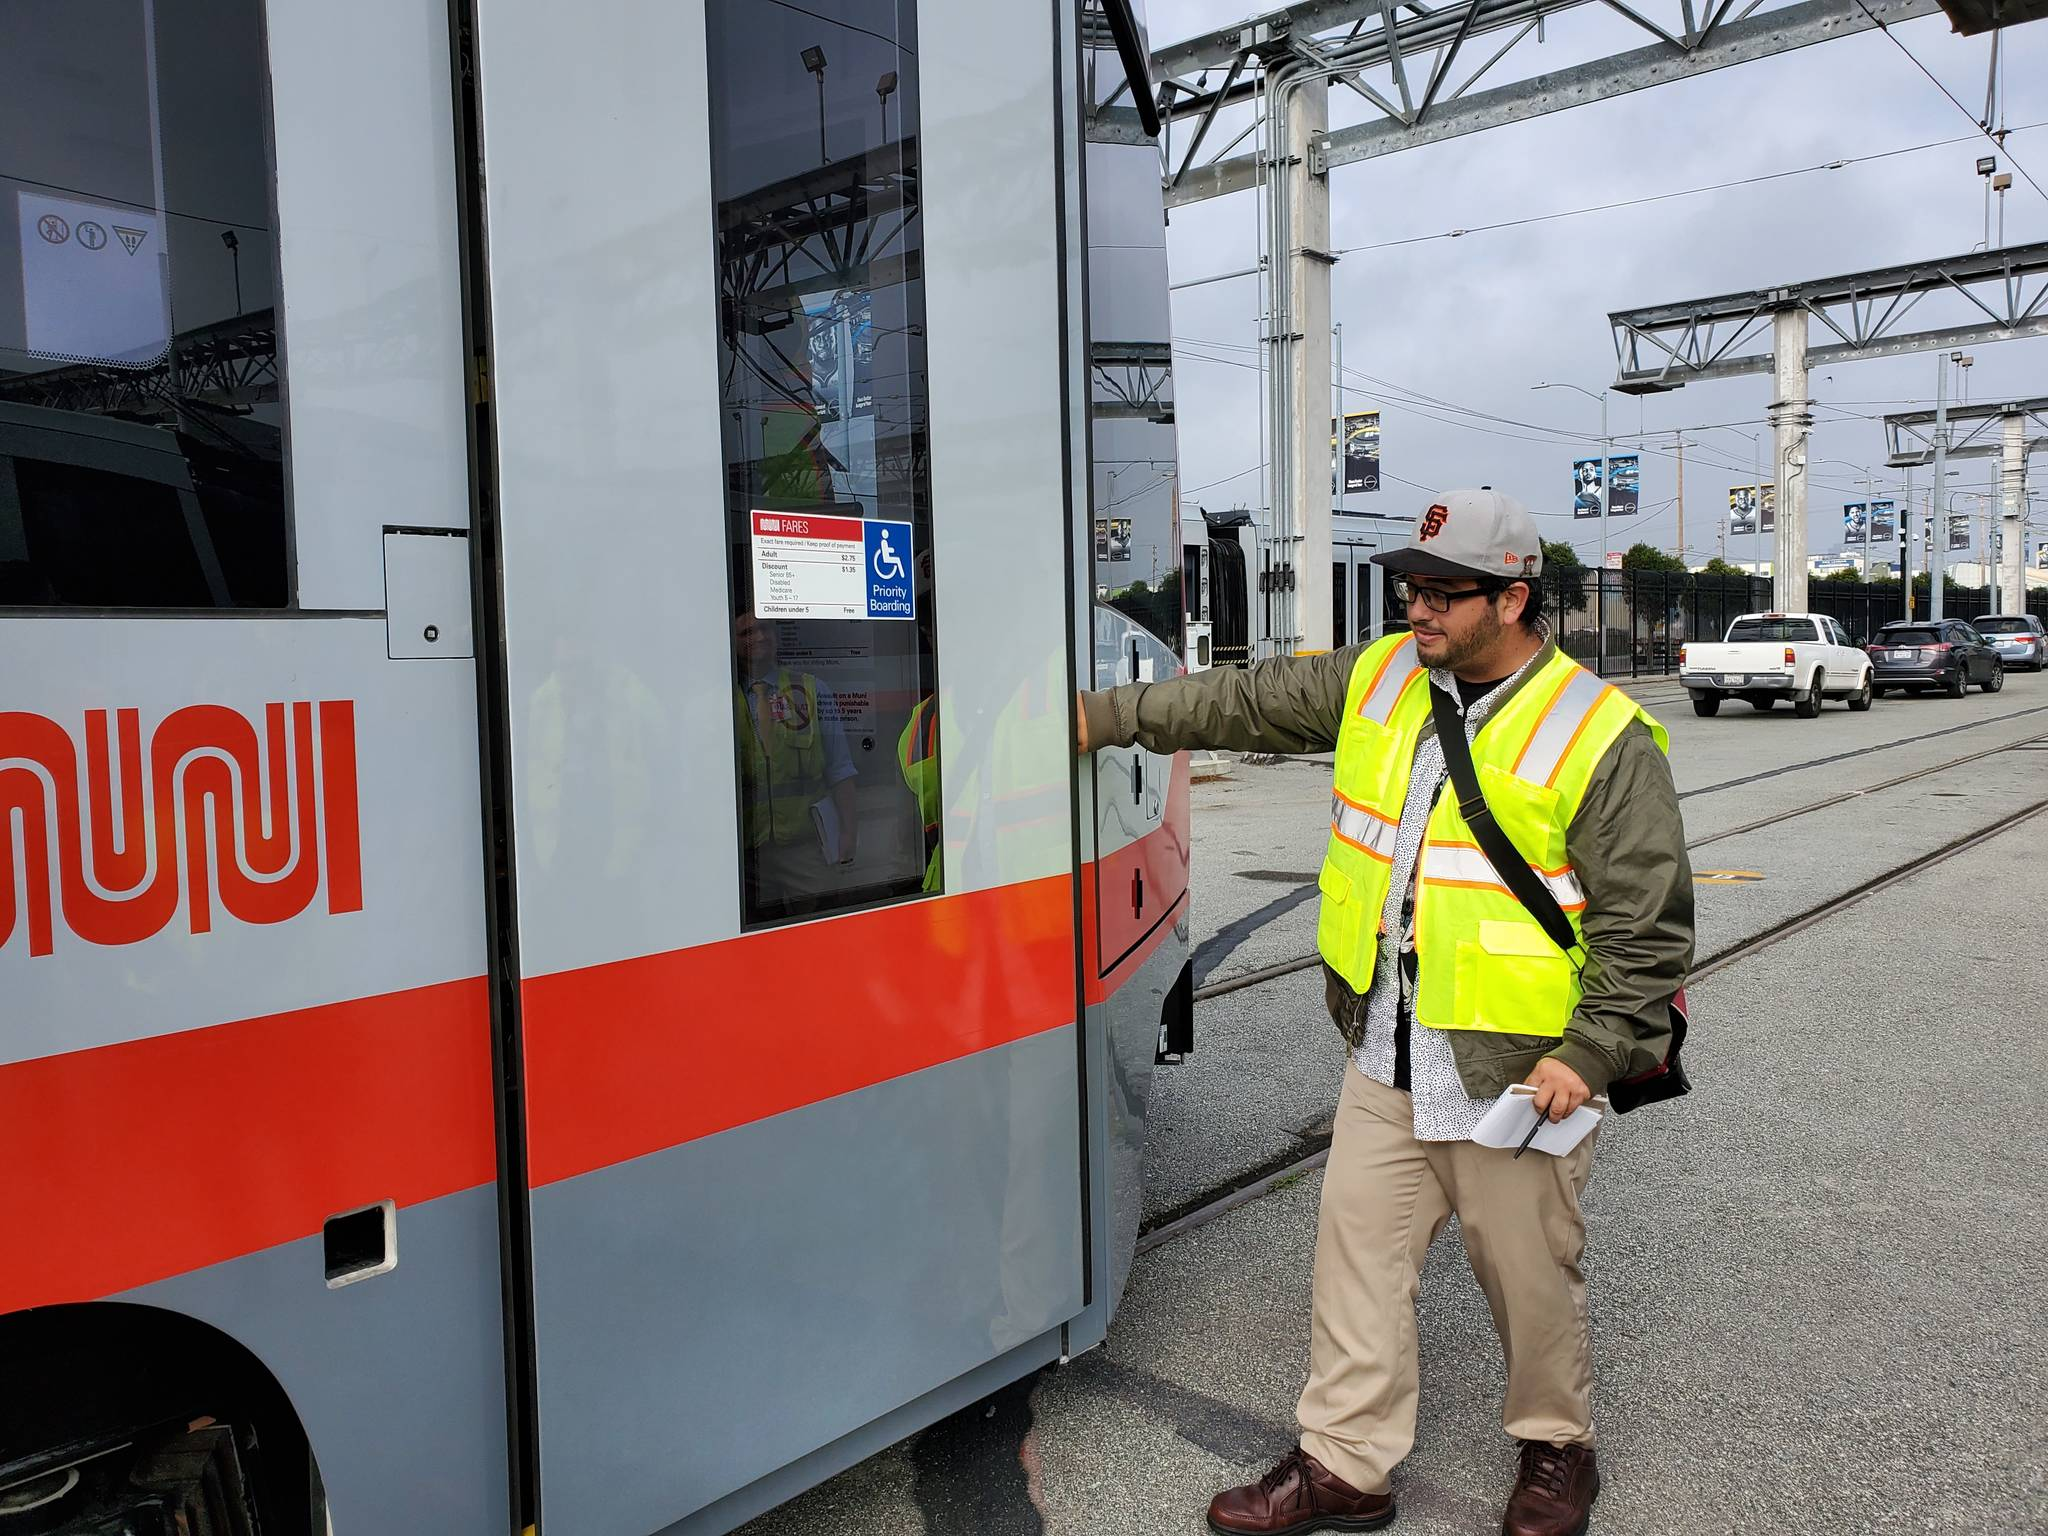 Examiner reporter Joe Fitzgerald Rodriguez tests repairs to doors on new Muni light-rail trains. The doors previously closed on passengers hands, causing some injuries.